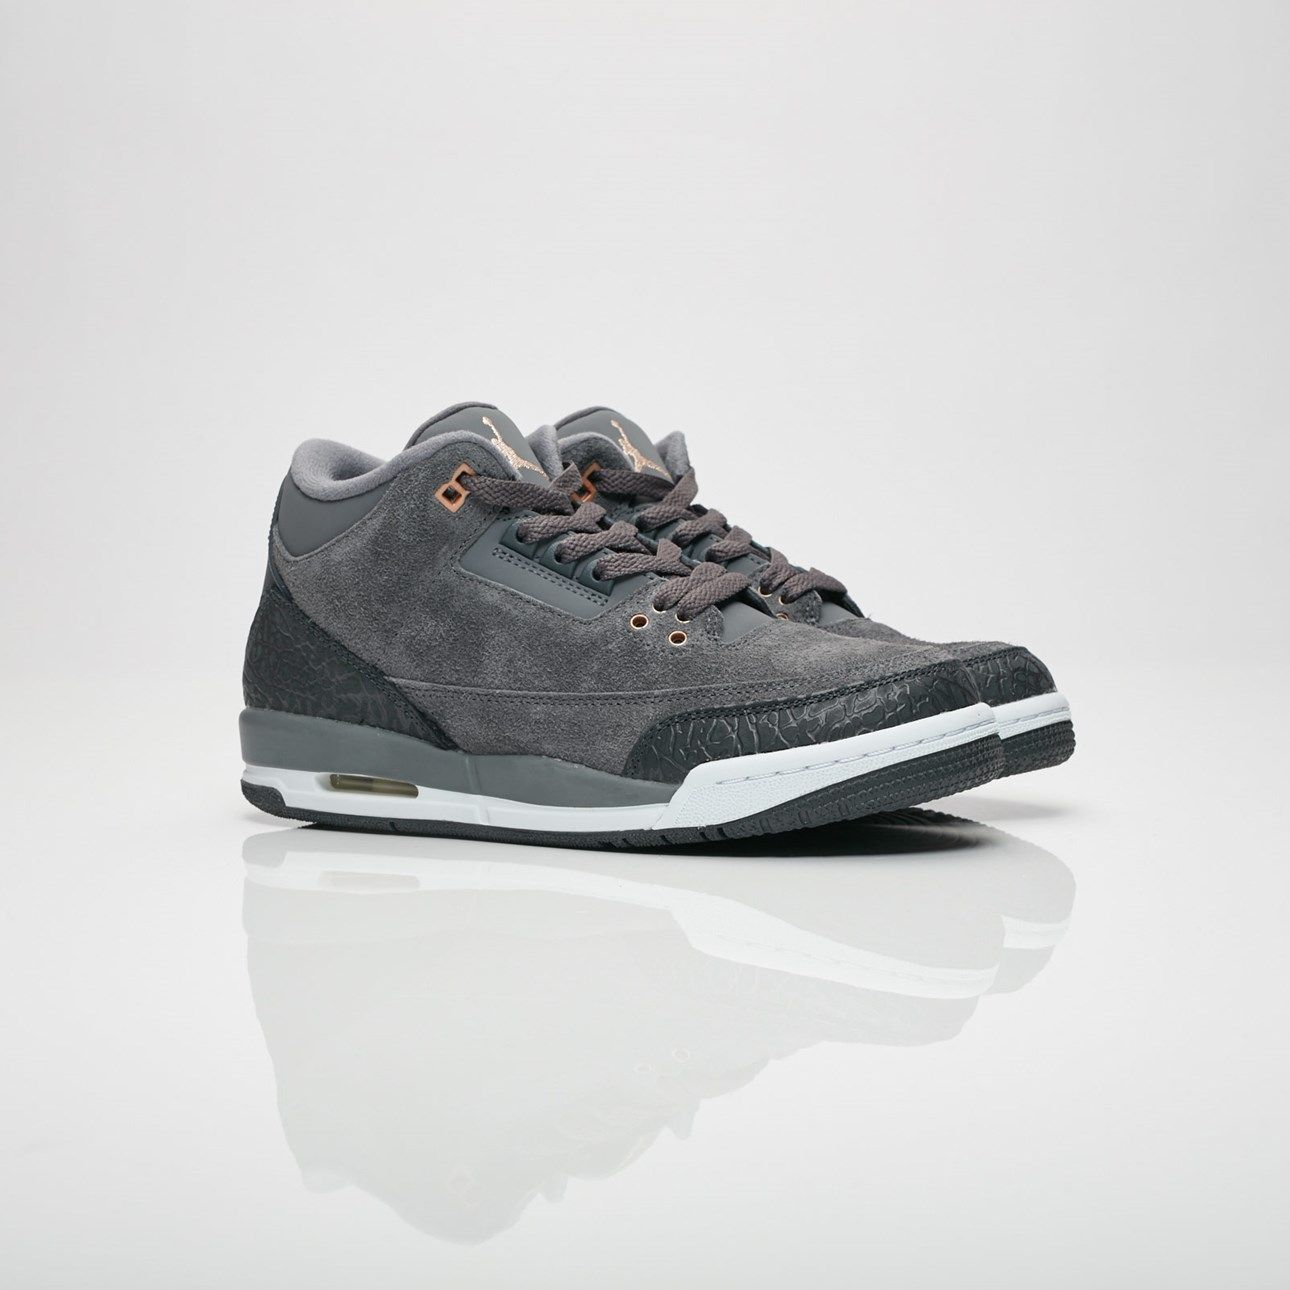 new product f4e74 2c831 Jordan Brand Air Jordan 3 Retro (GS) | want | Air jordan 3 ...